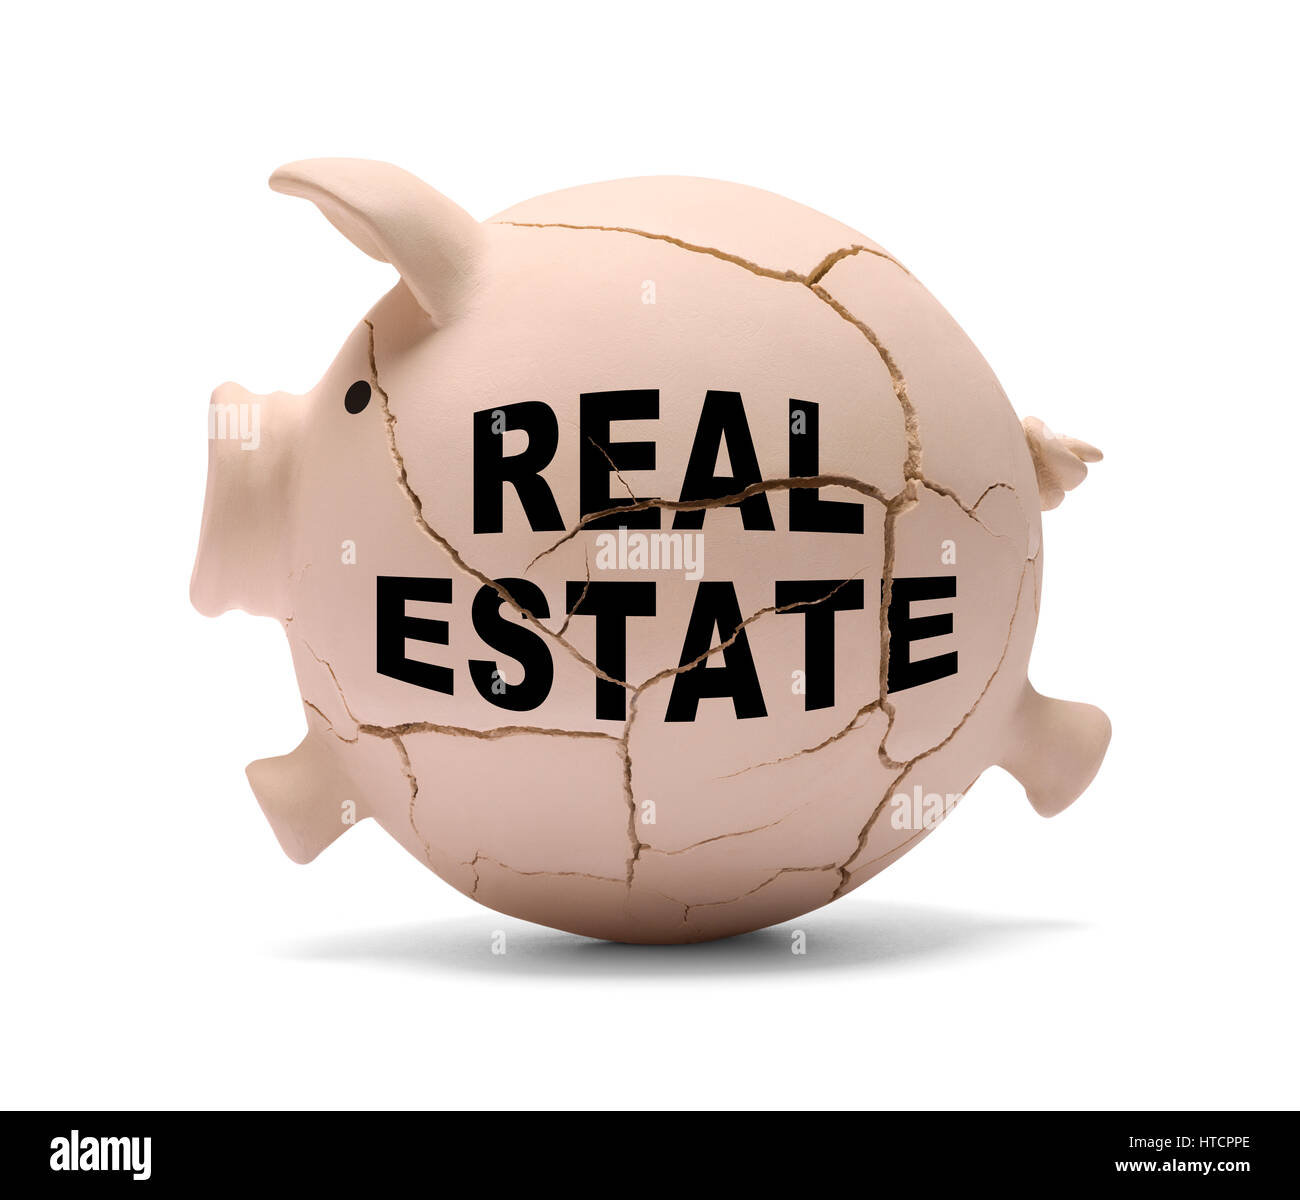 Real Estate Piggy Bank Cracking Apart Isolated on White Background. - Stock Image